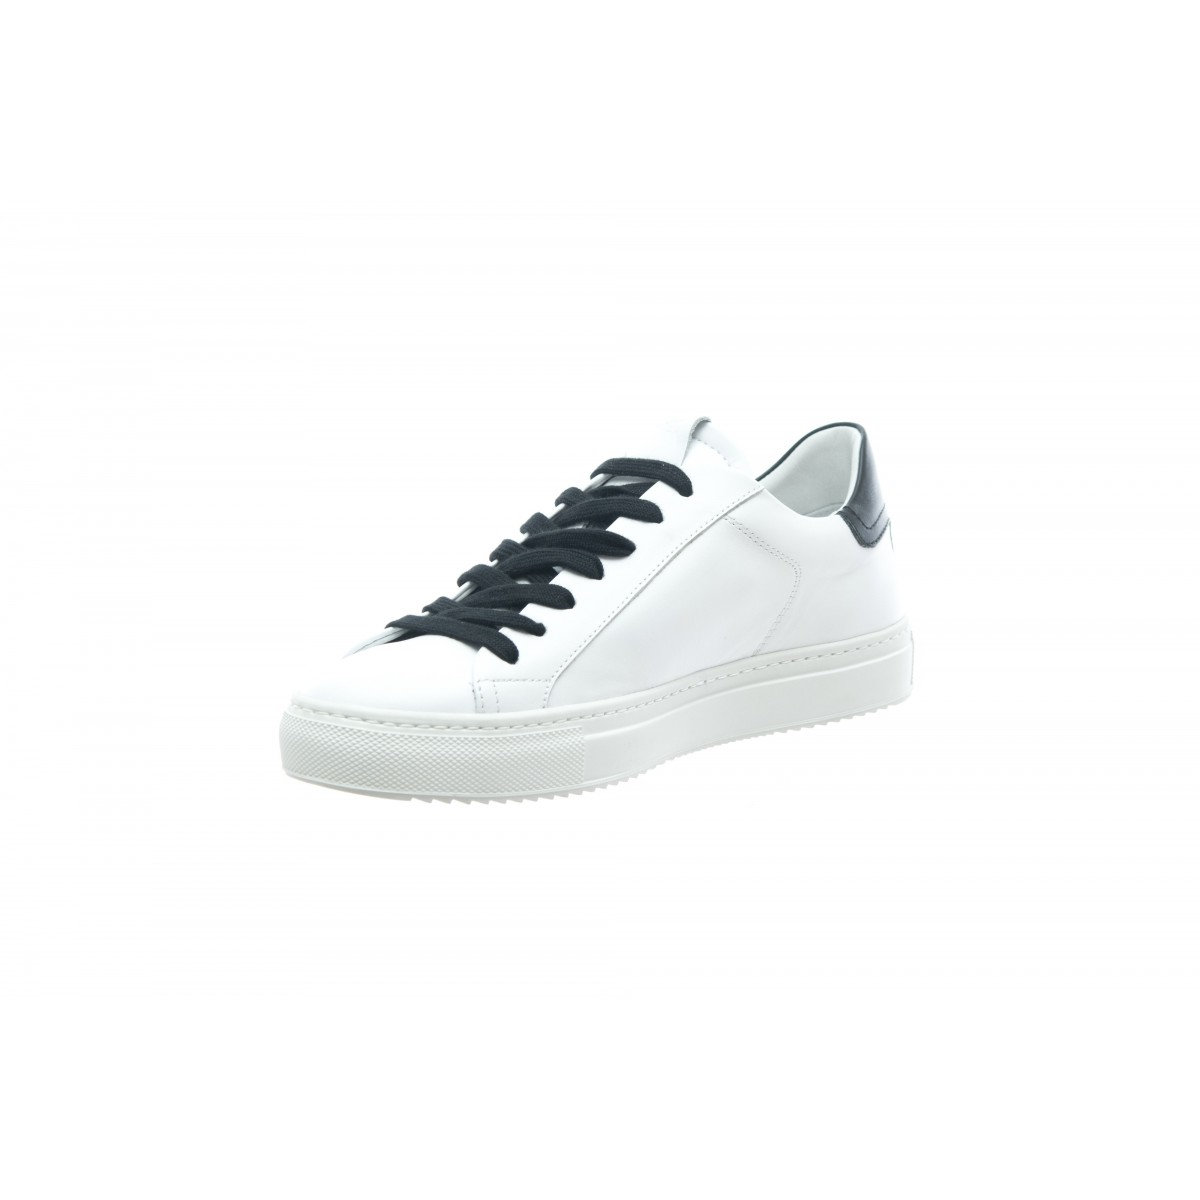 Scarpa - Tennis a woman sneakers made in italy